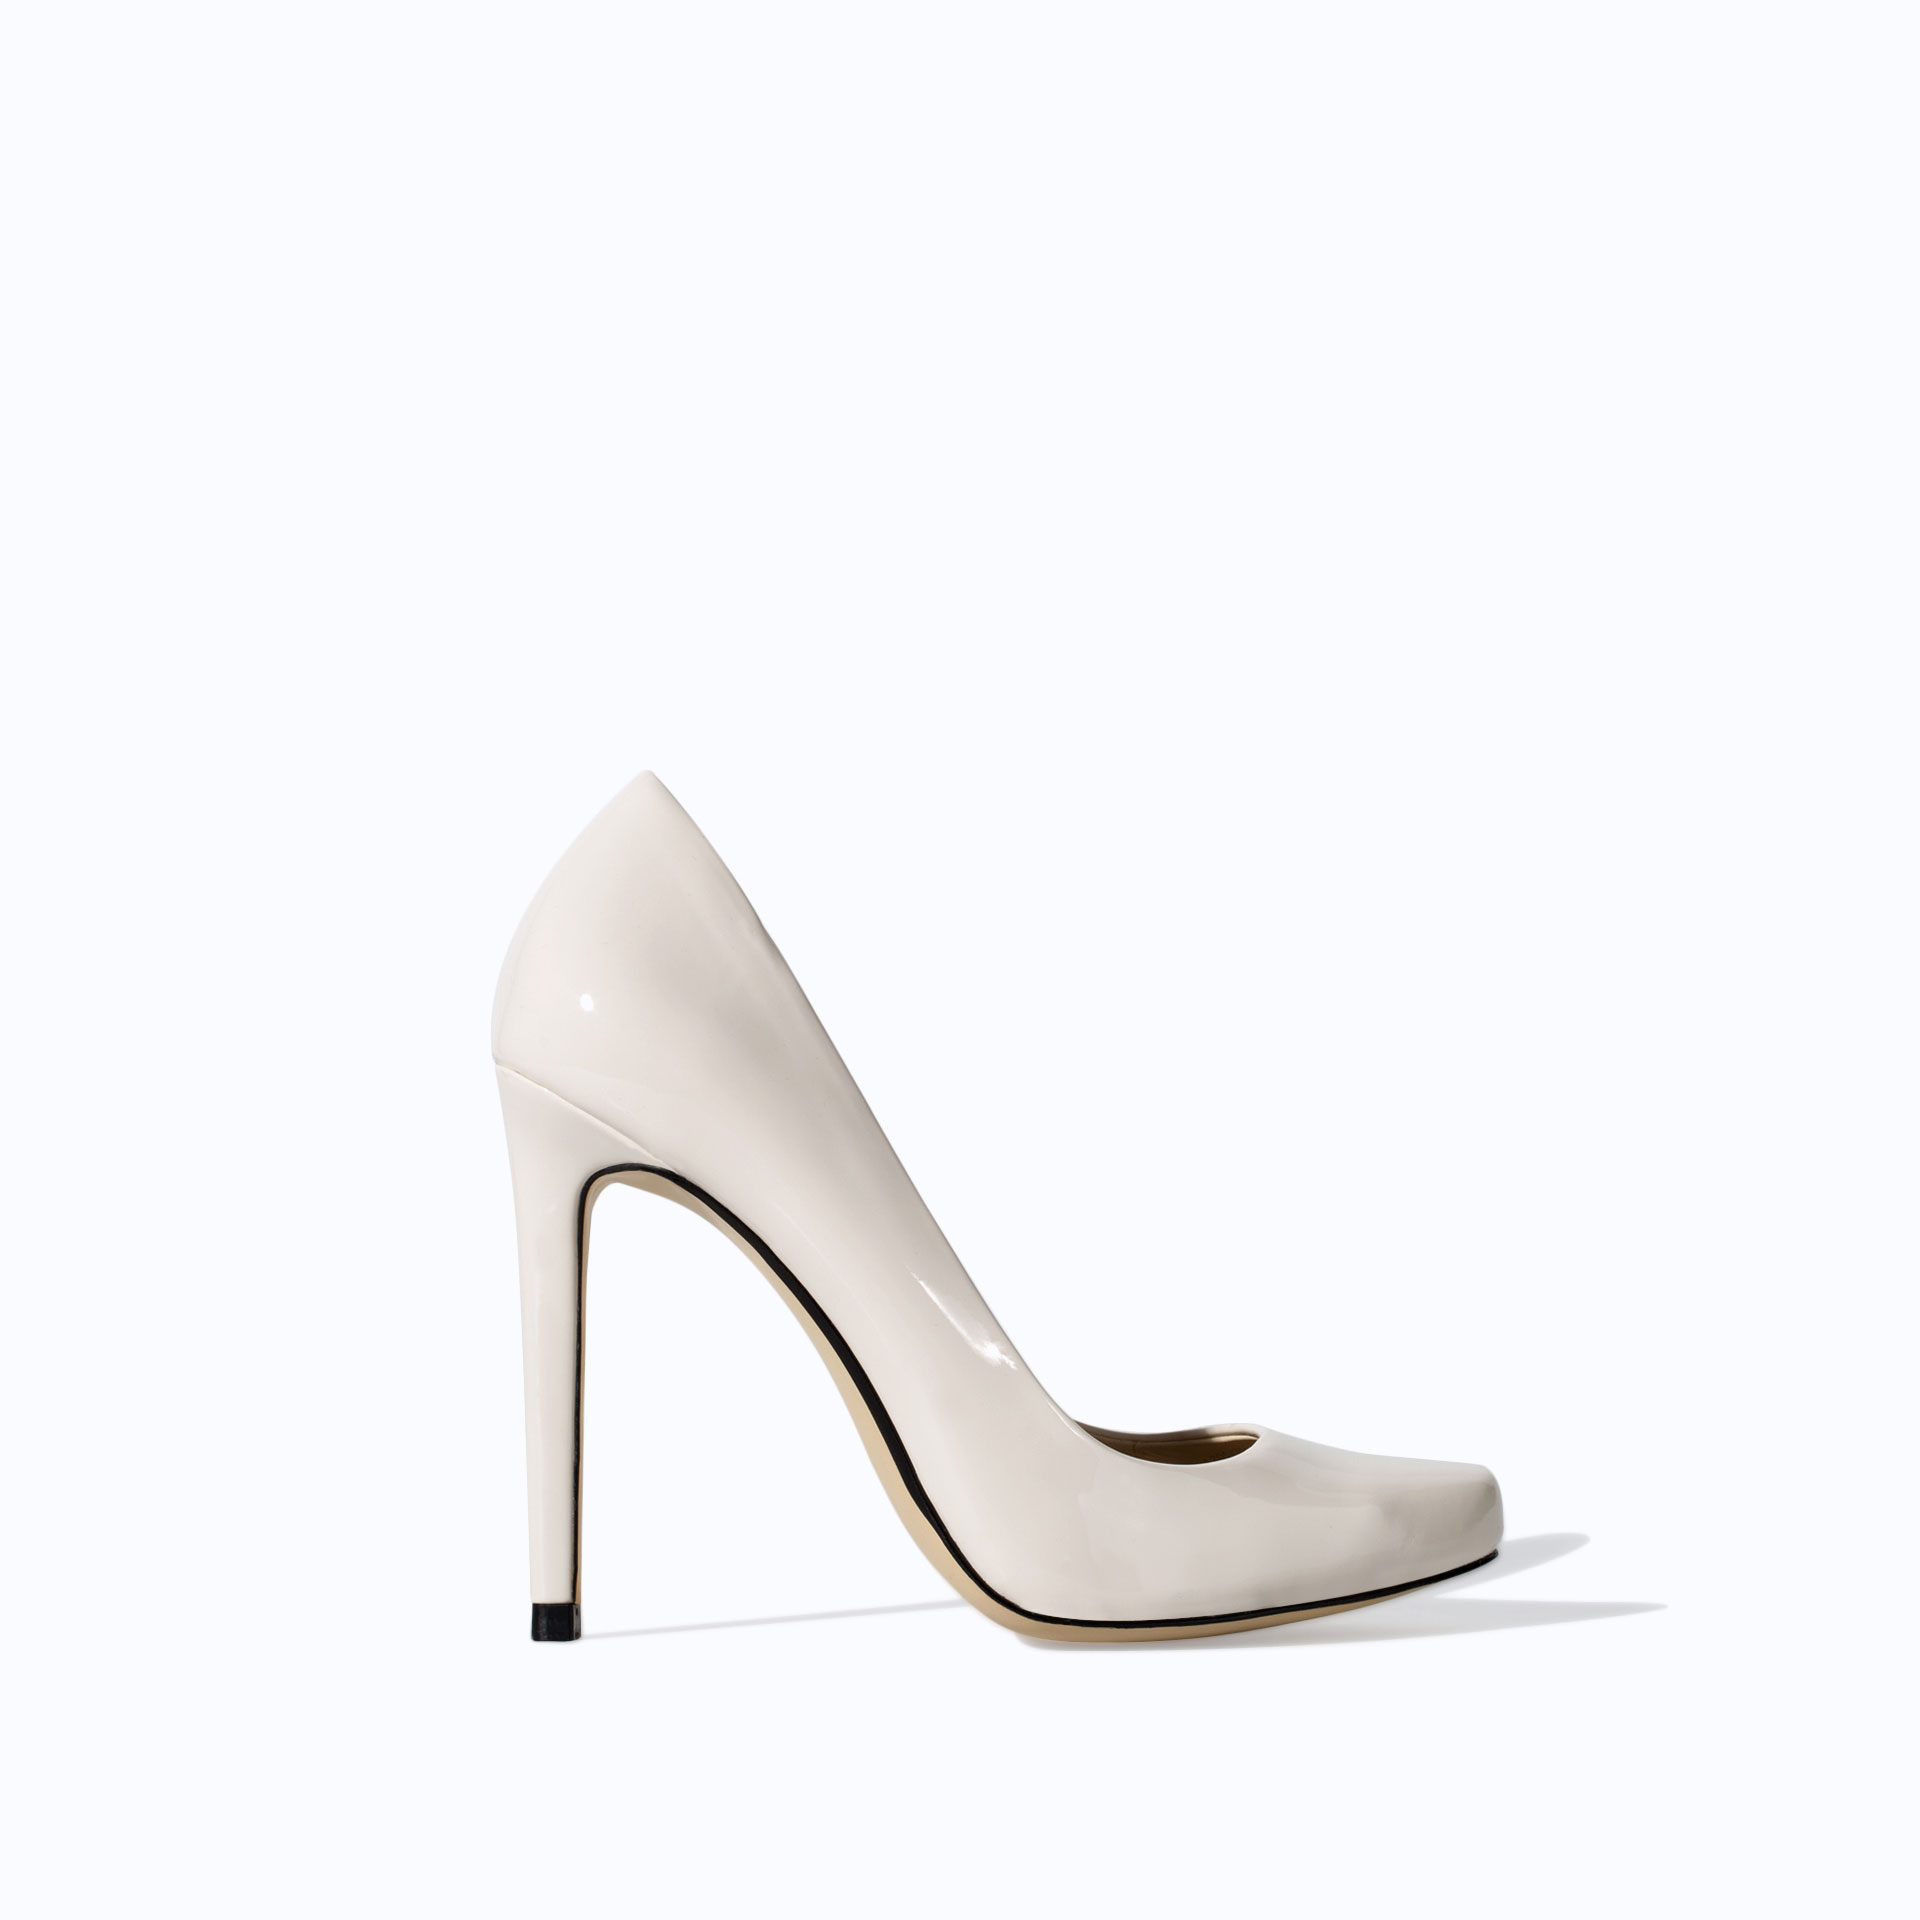 zara synthetic patent leather high heel court shoe in